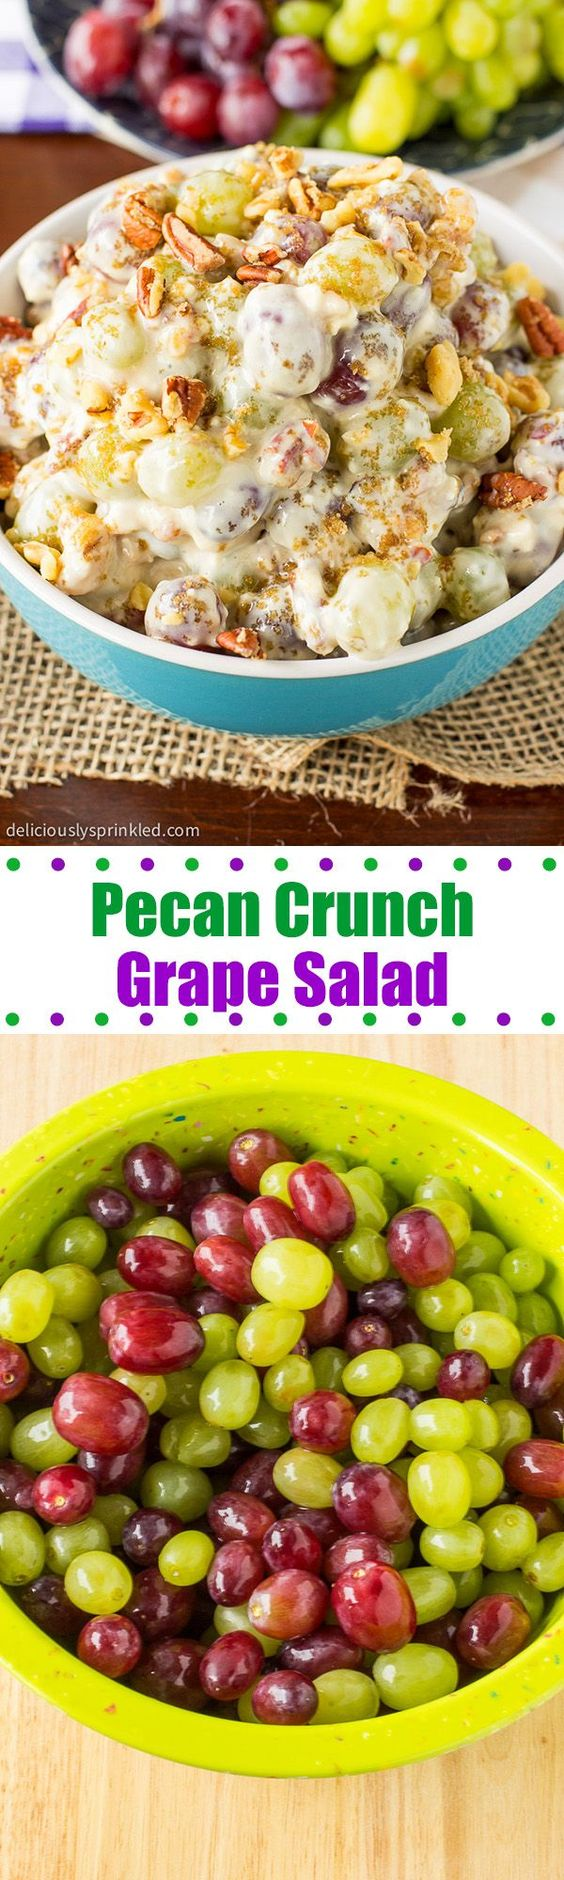 EASY PECAN CRUNCH GRAPE SALAD RECIPE